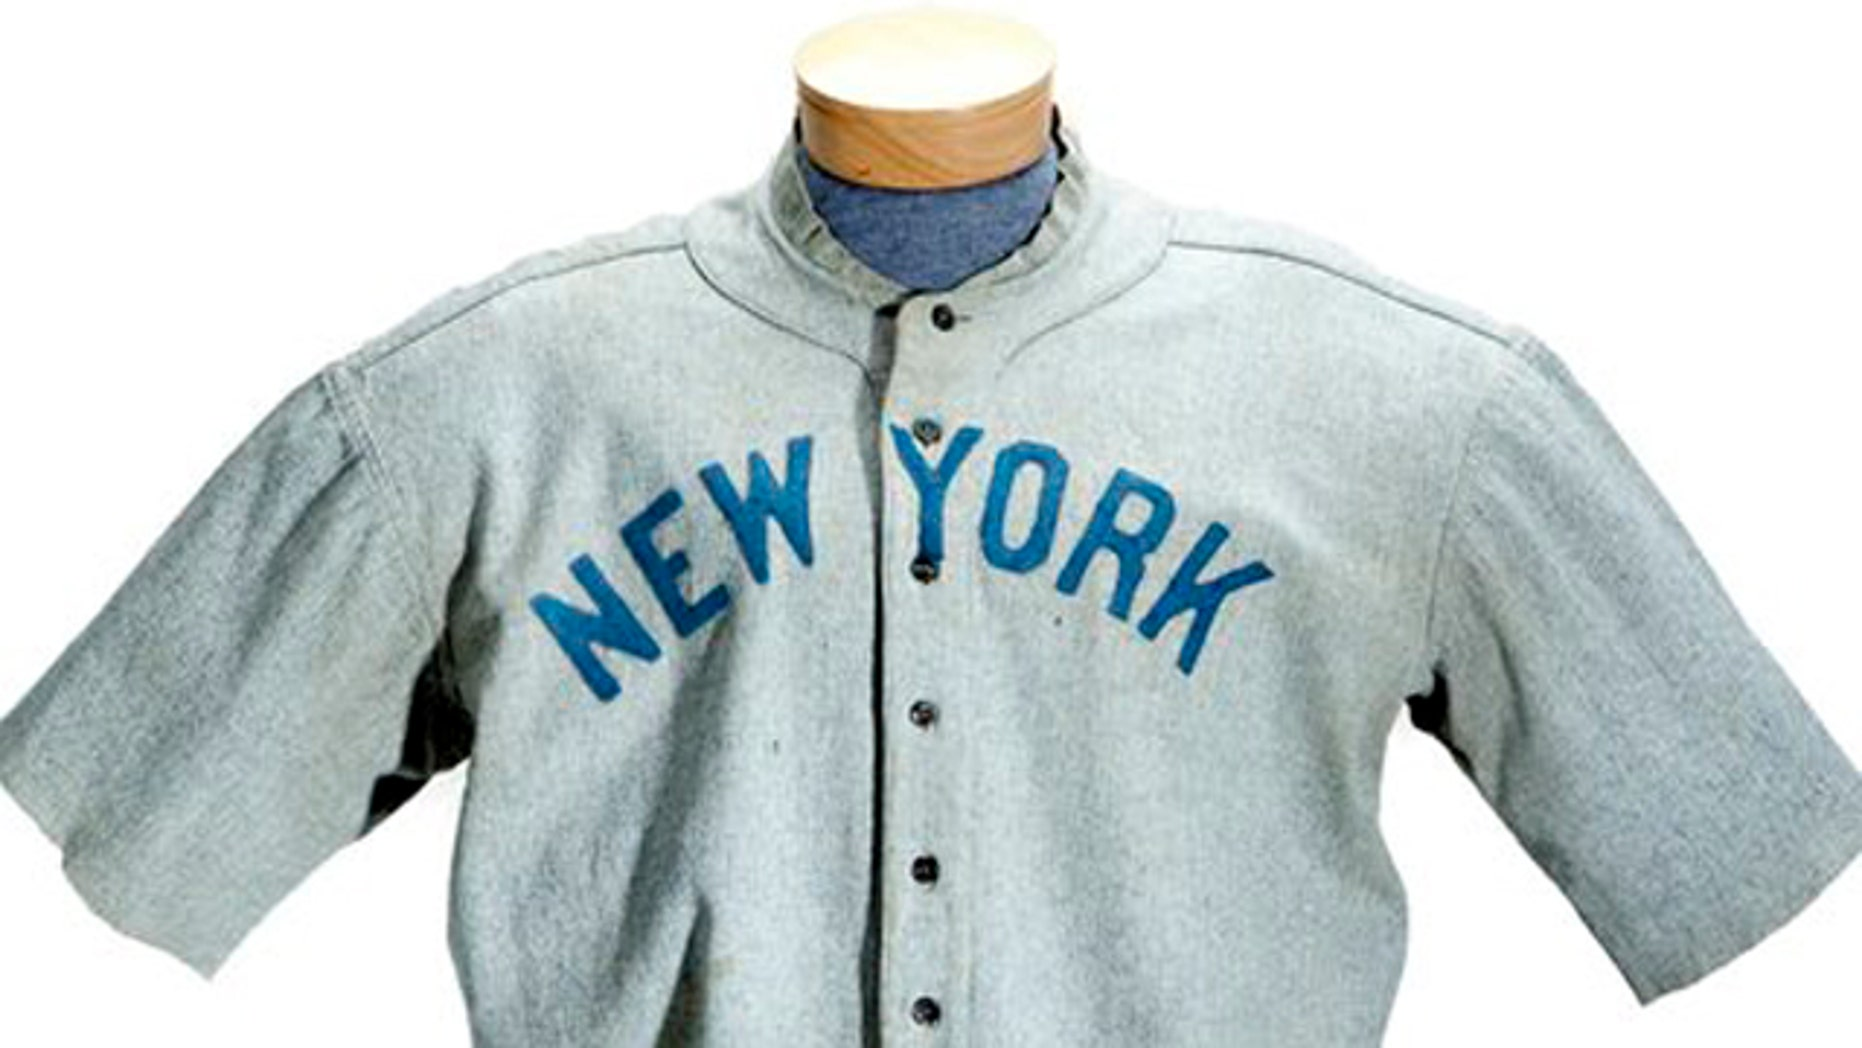 c4fb9271425 Babe Ruth jersey sells for a record $4.4 million at auction | Fox News